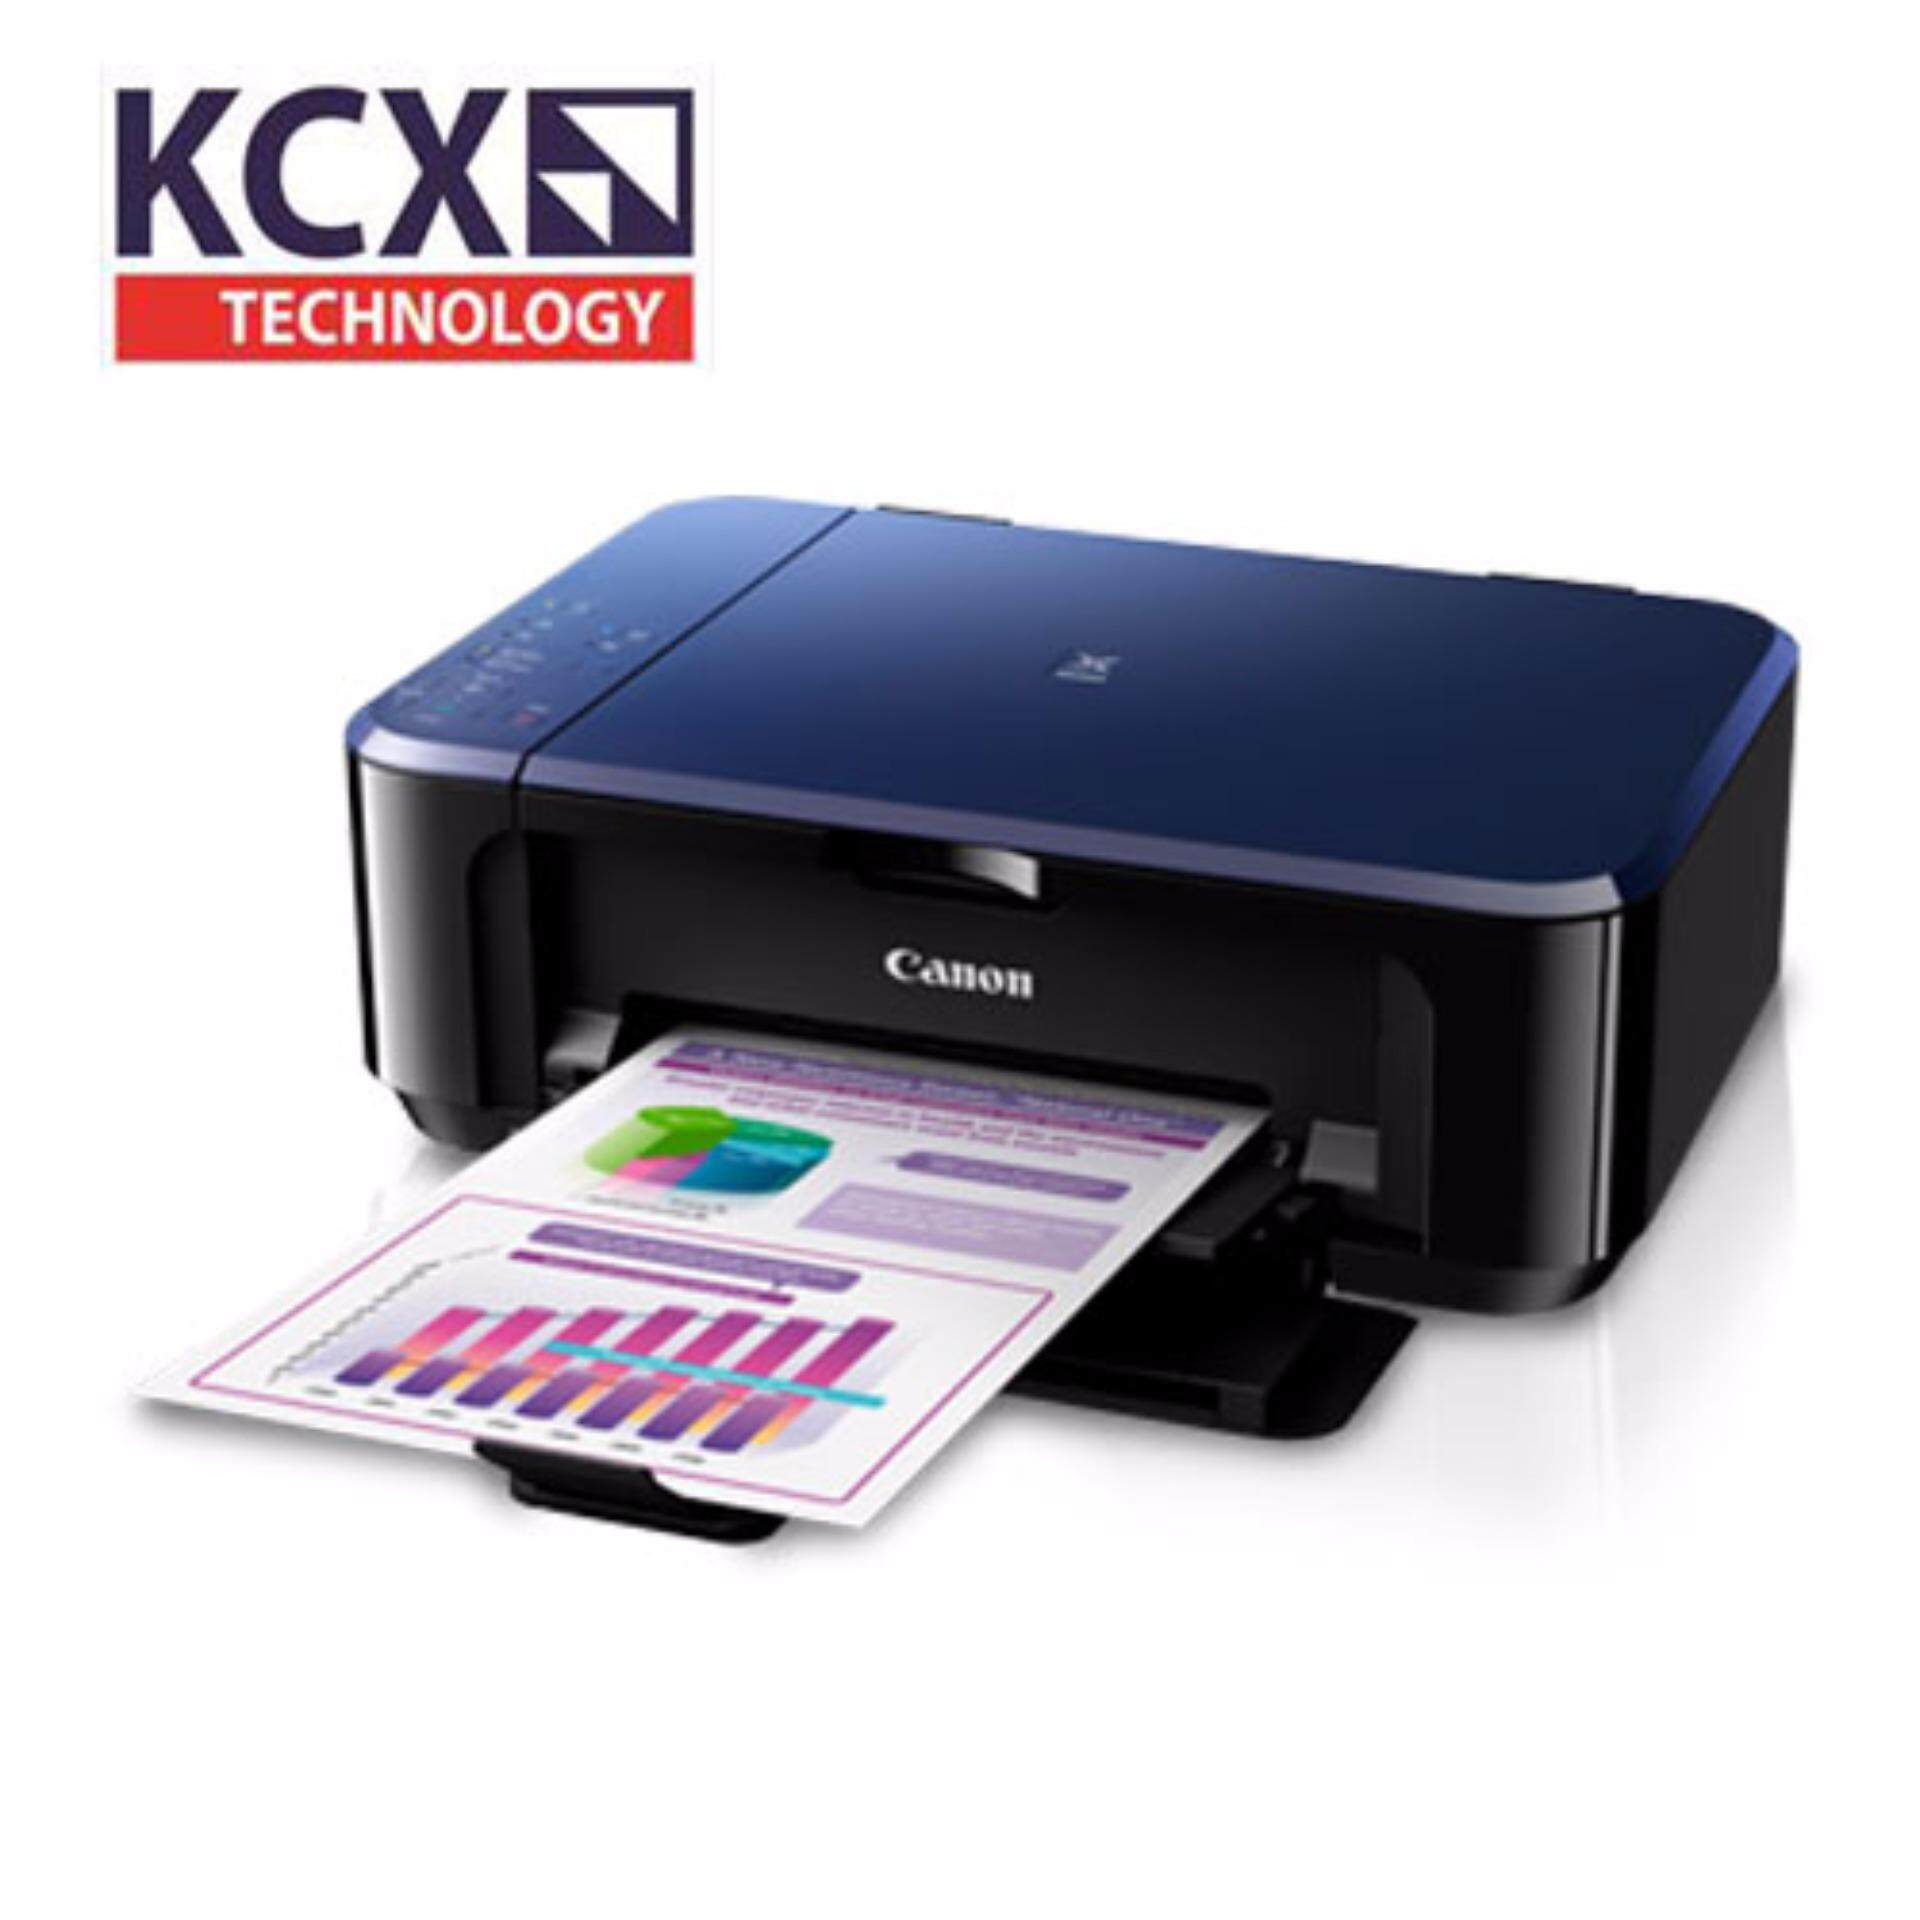 Canon Pixma E560 Ink Efficient Printer - Print, Scan, Copy